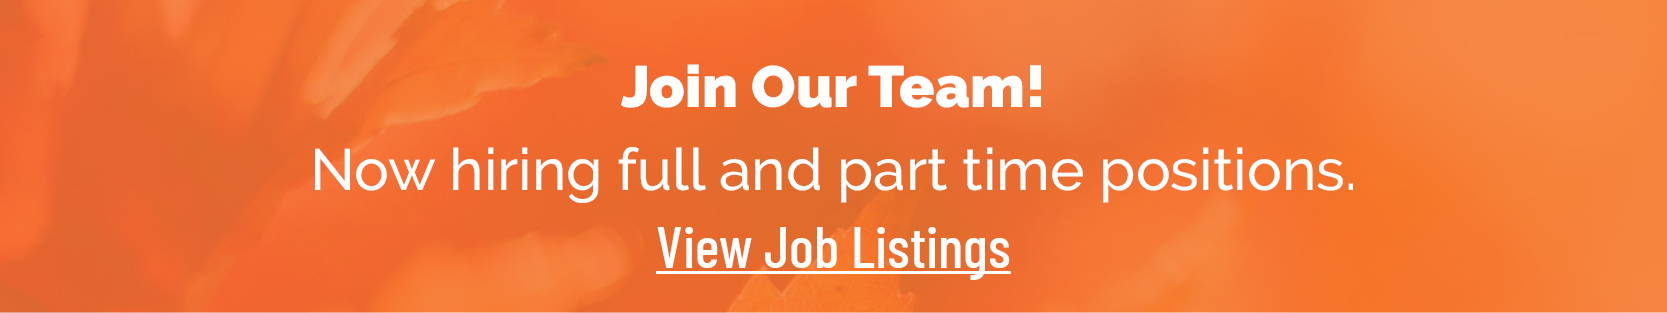 Join our team! View job listings.